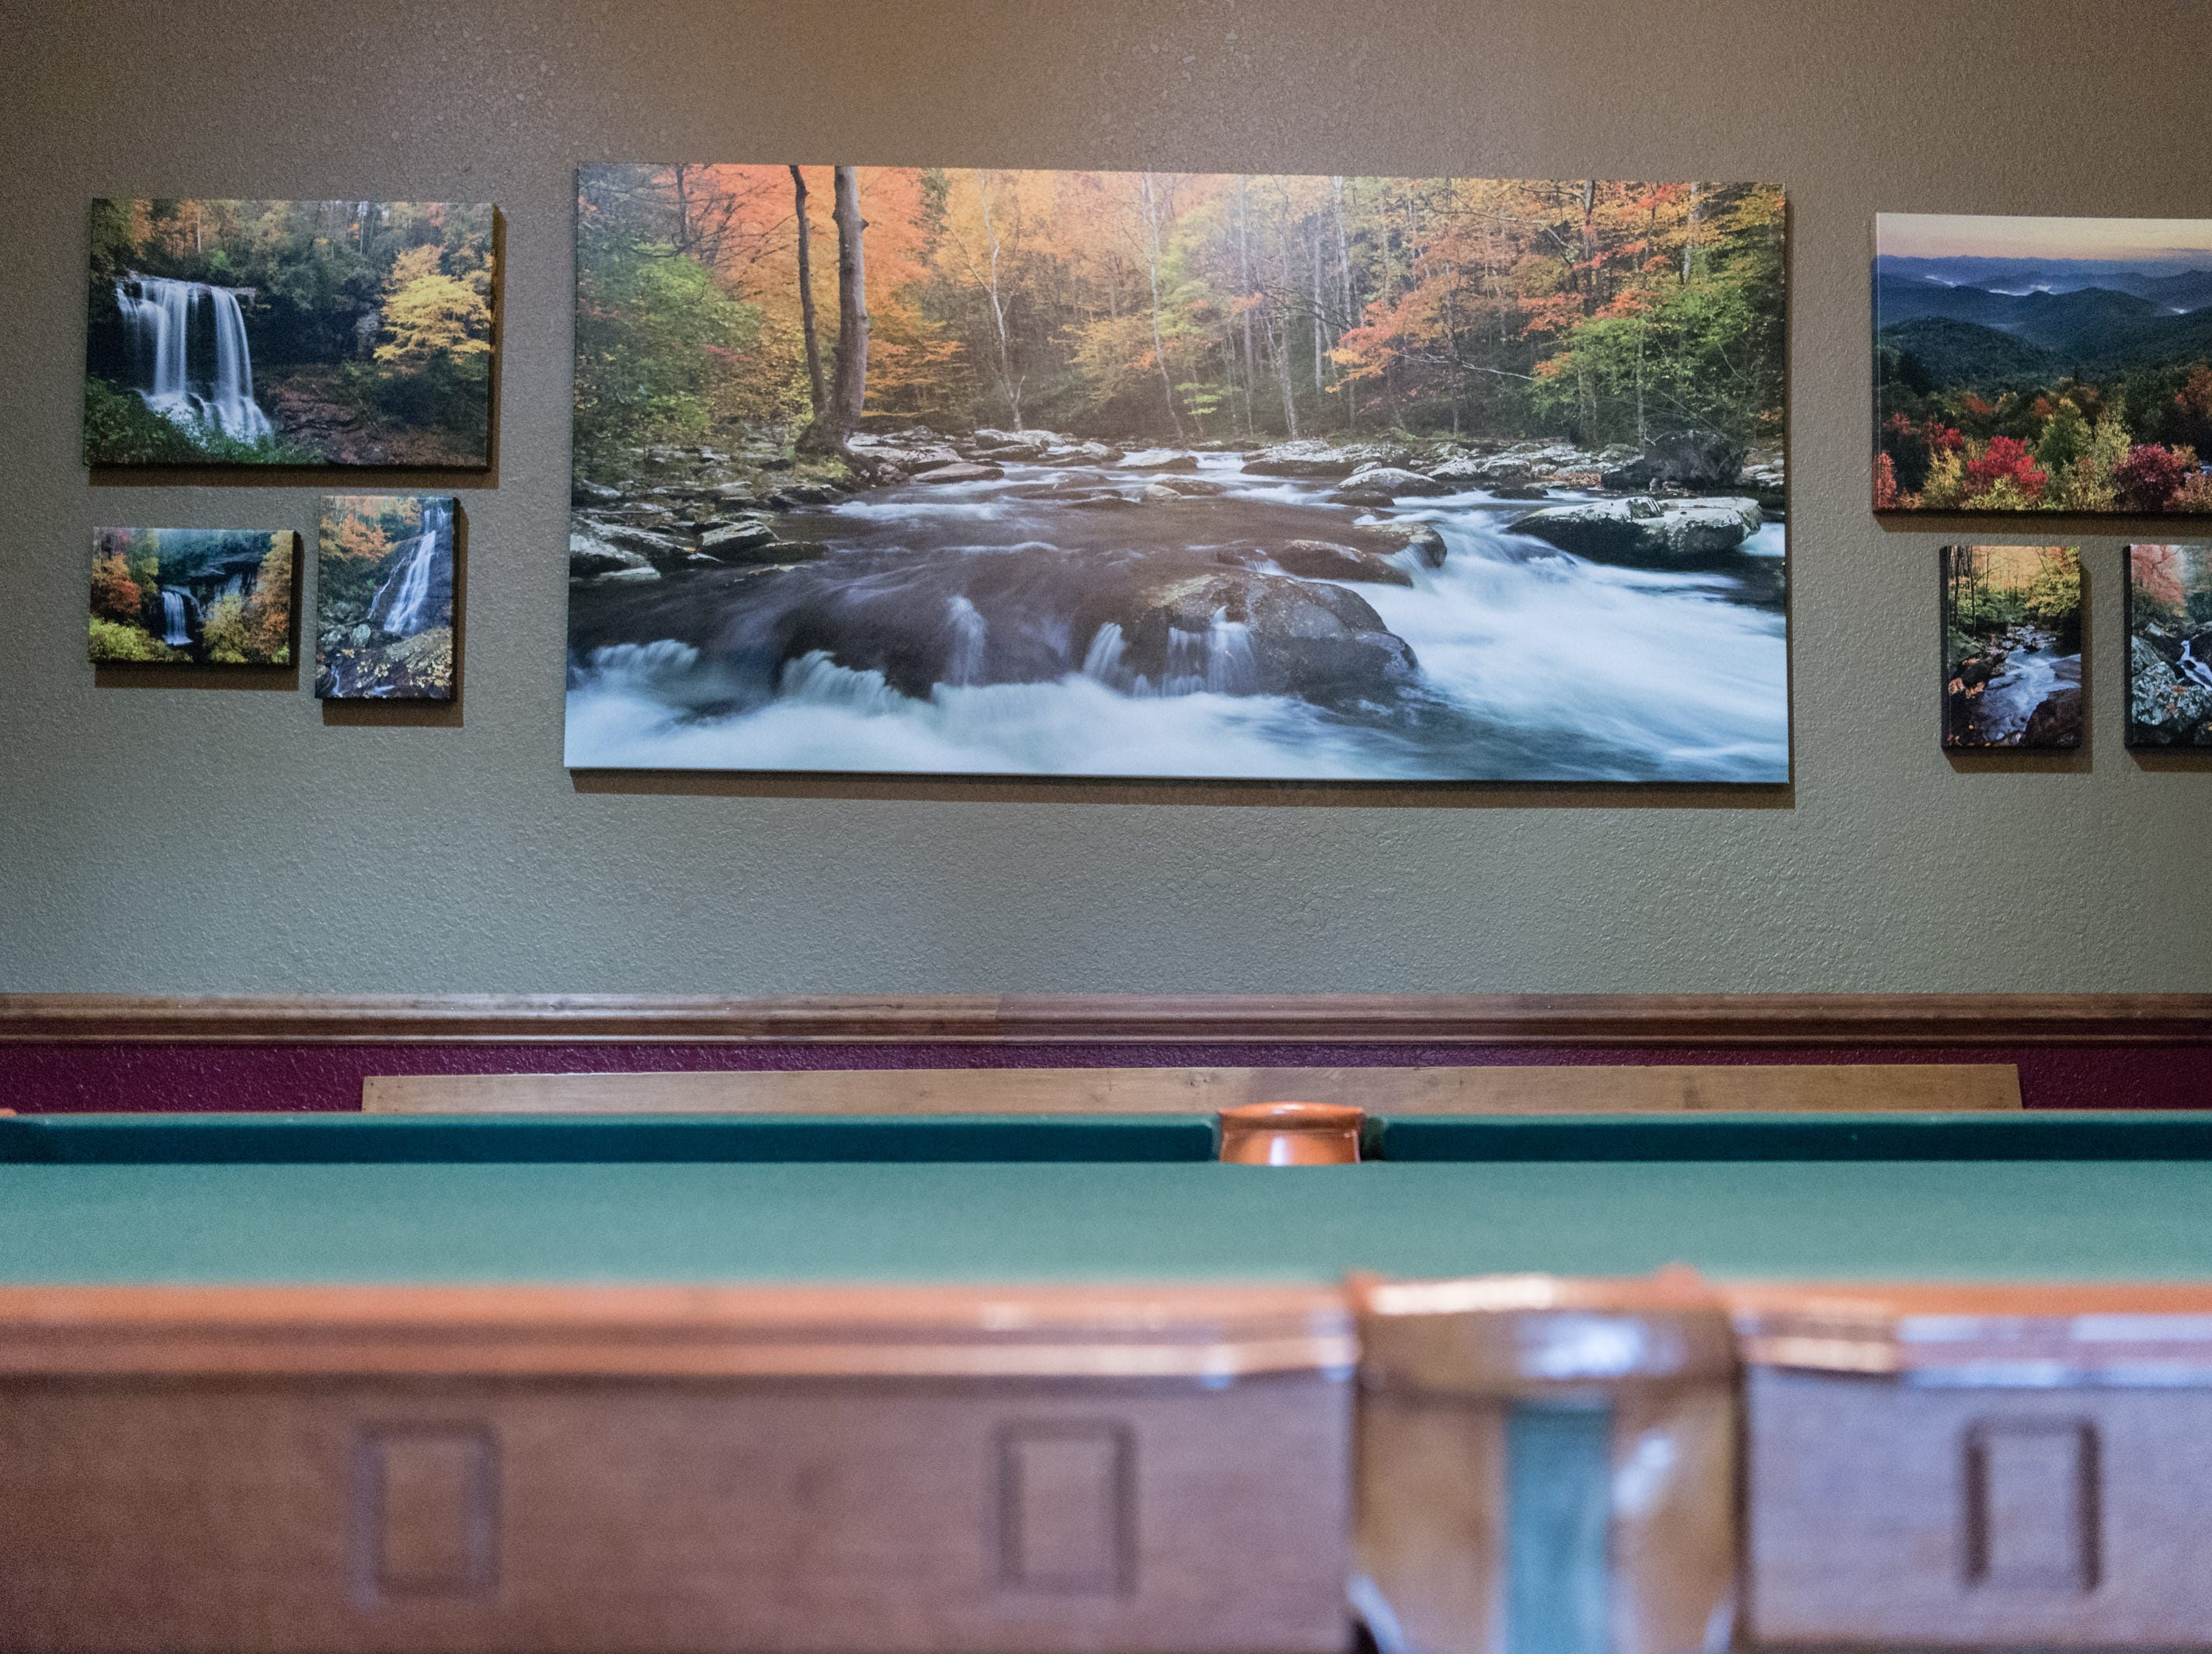 Photographs in a game room on the basement level of Dan and Belle Fangmeyer's log cabin in Waynesville.